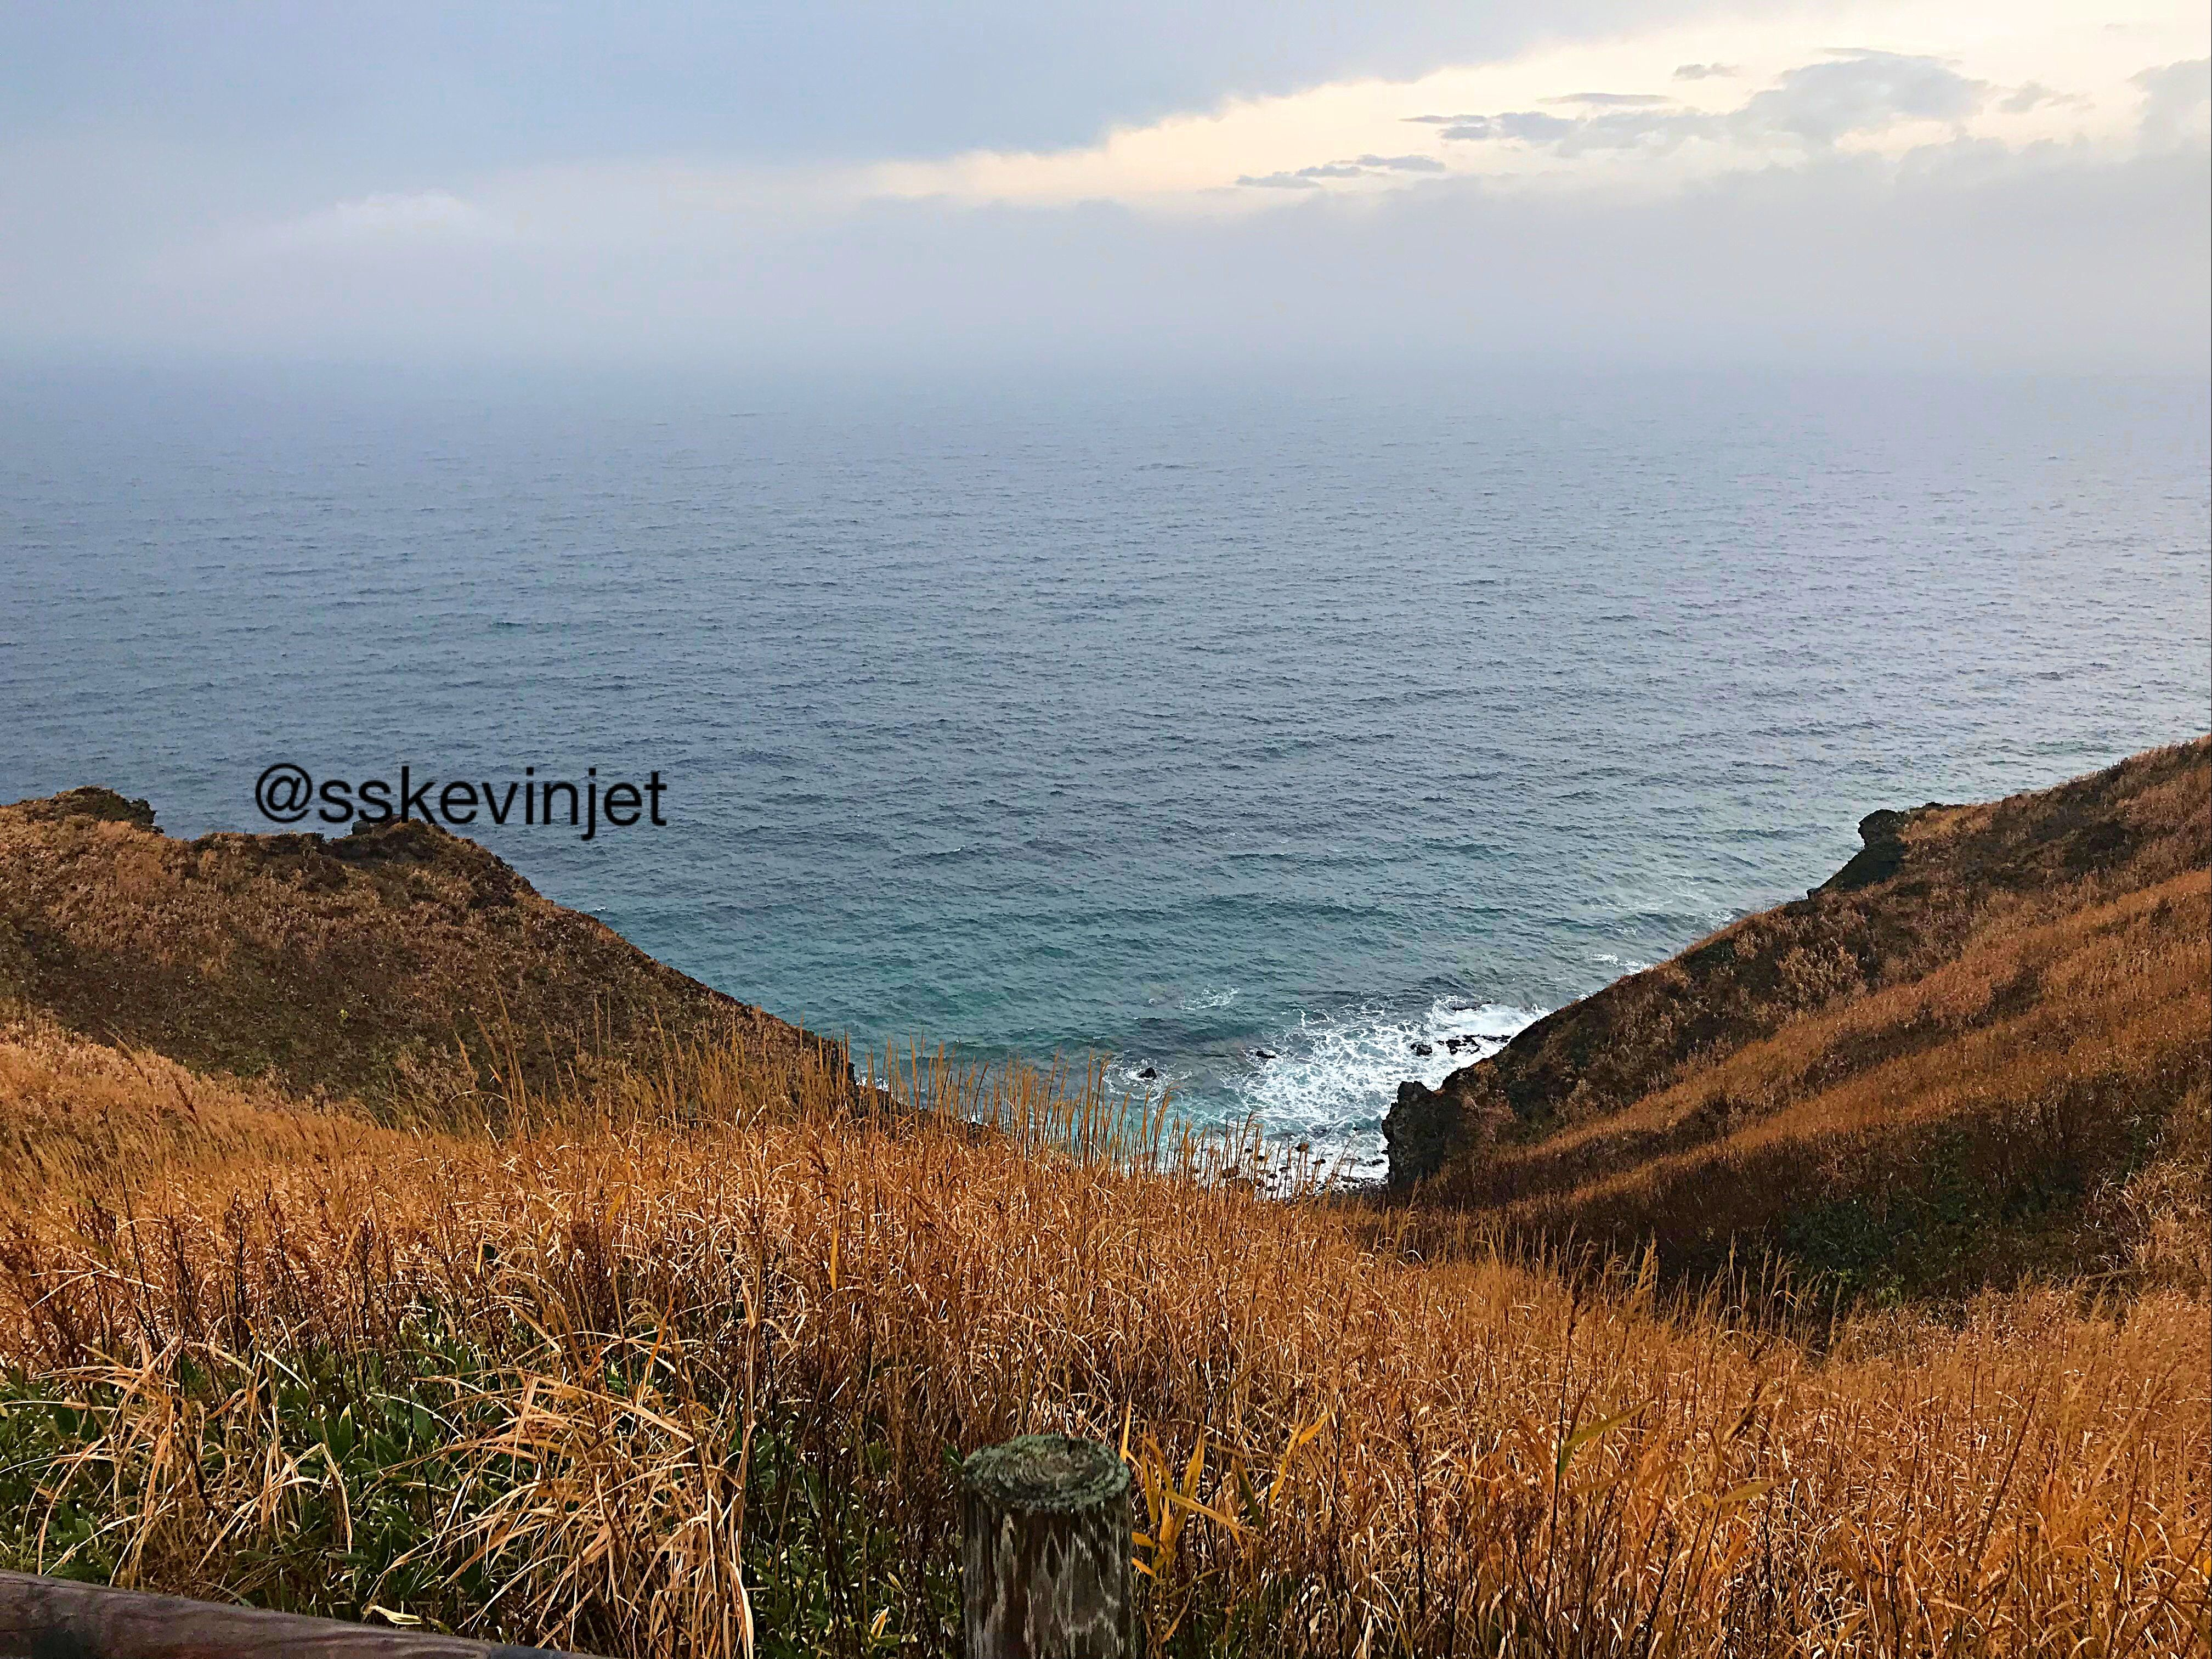 The Autumn Grass Hill And The Sea With Cloudy Sky Travel Travelphotography Landscape Landscapephotography Shotoniphone Shutterstock Grass Sea Cloudy